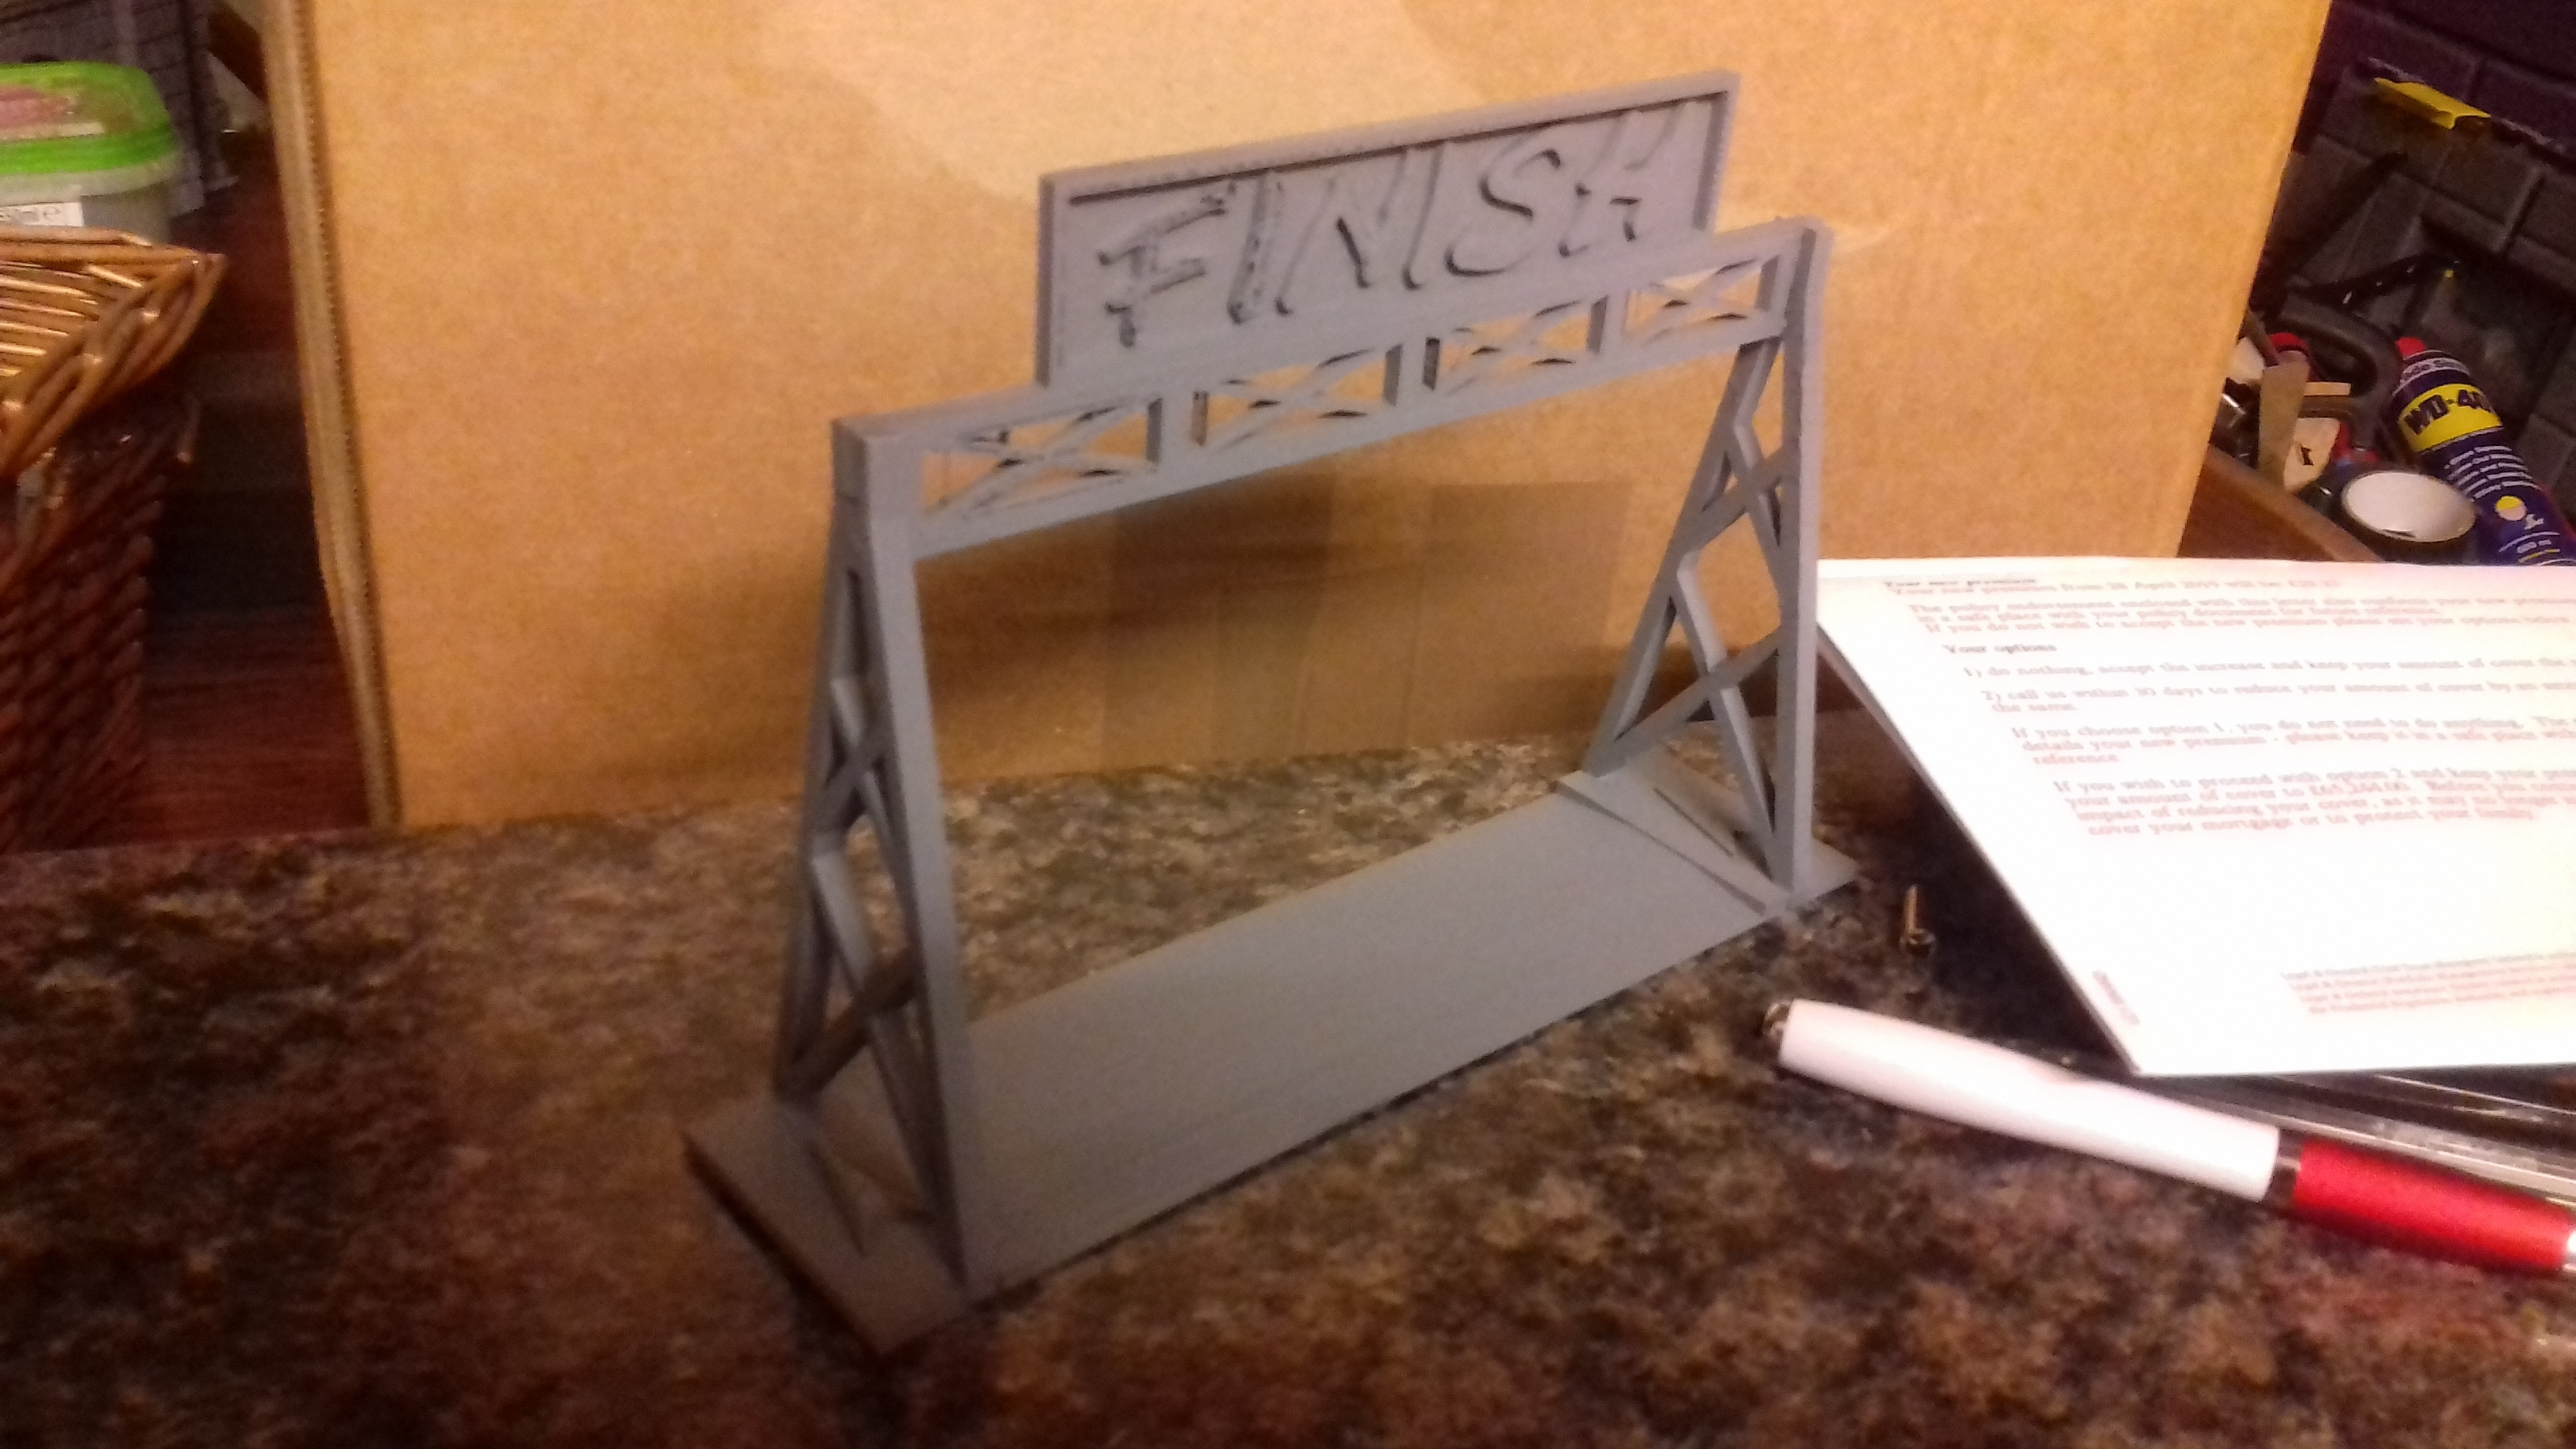 20190110_172635.jpg Download free STL file Gaslands Simple Gantry Gate • 3D printer model, Wrecker